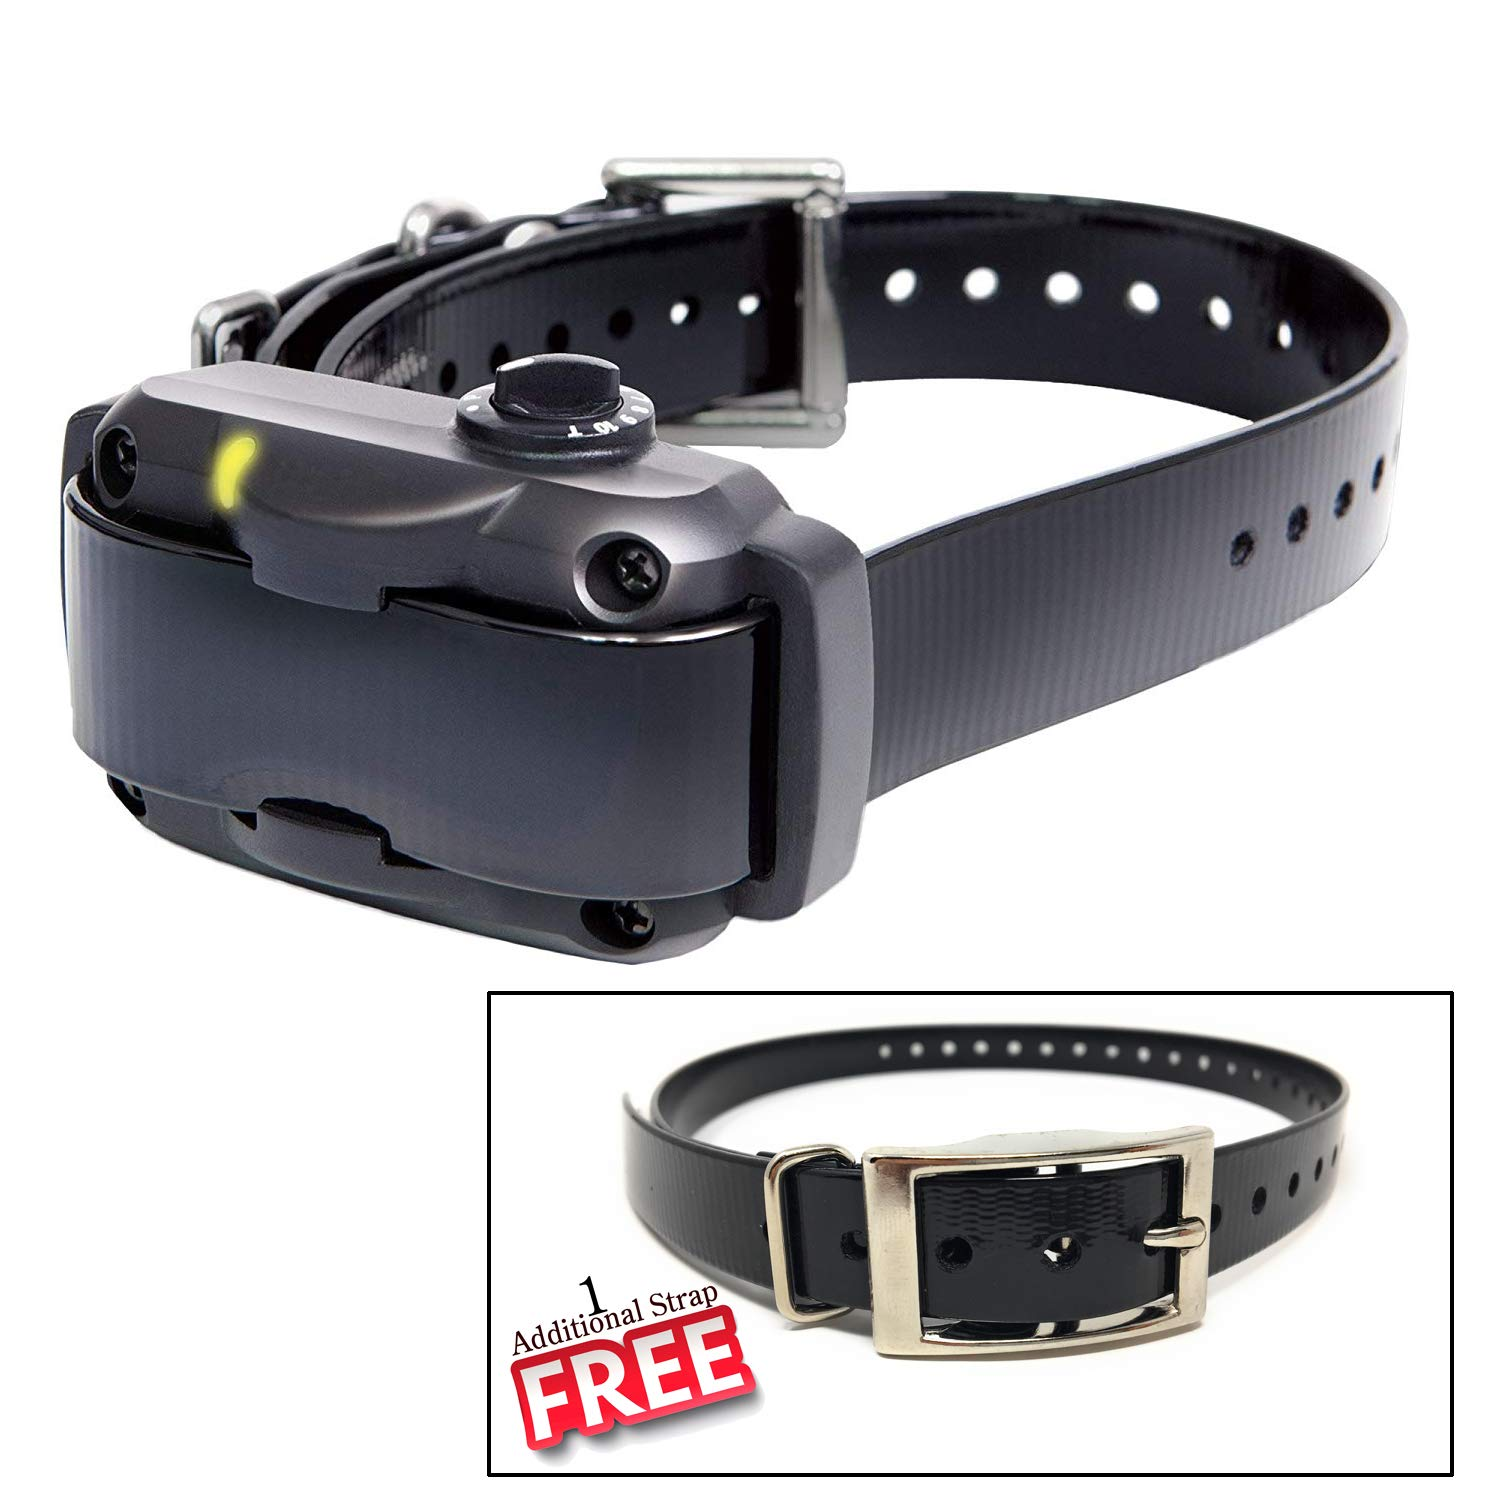 Dogtra YS600 Rechargeable 10 Level Adjustable No Bark Collar for Dogs 35+ Lbs with Extra Free Strap by Dogtra (Image #1)